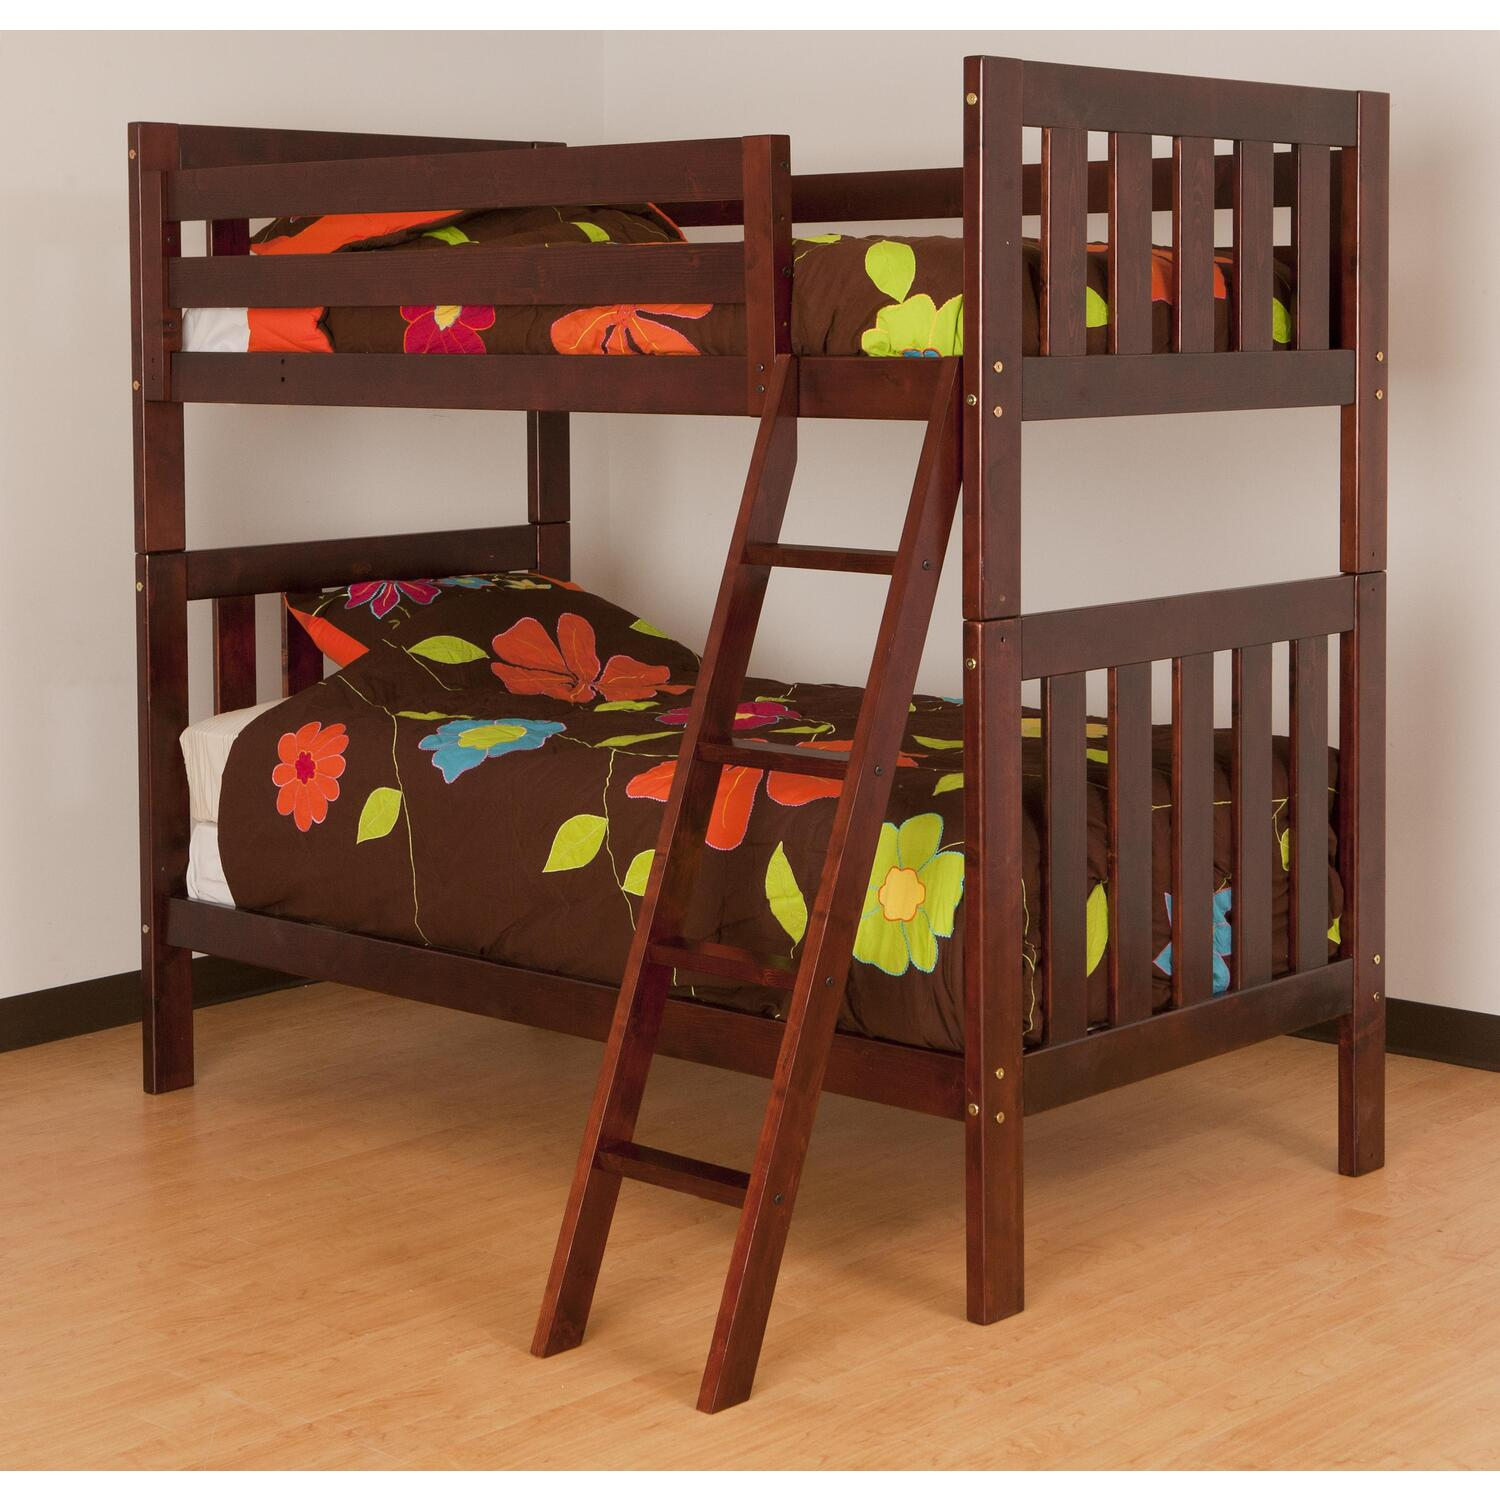 furniture home goods appliances athletic gear fitness toys baby products musical instruments